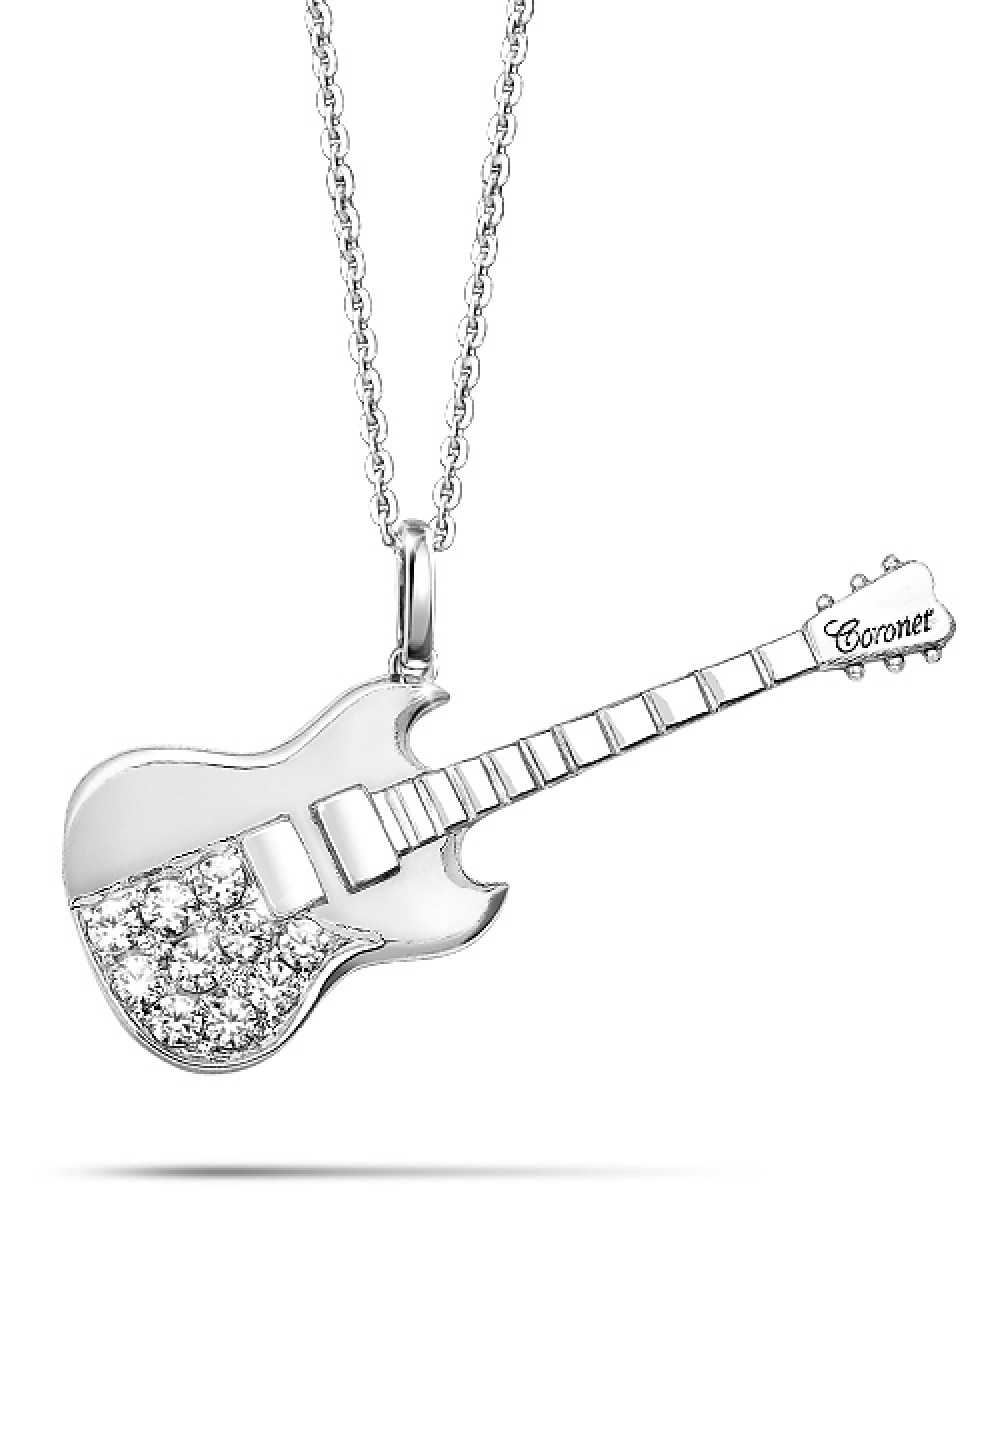 guitar steel pendant necklaces chain necklace shop surewaydm mens gld stainless men chains for jewelry in